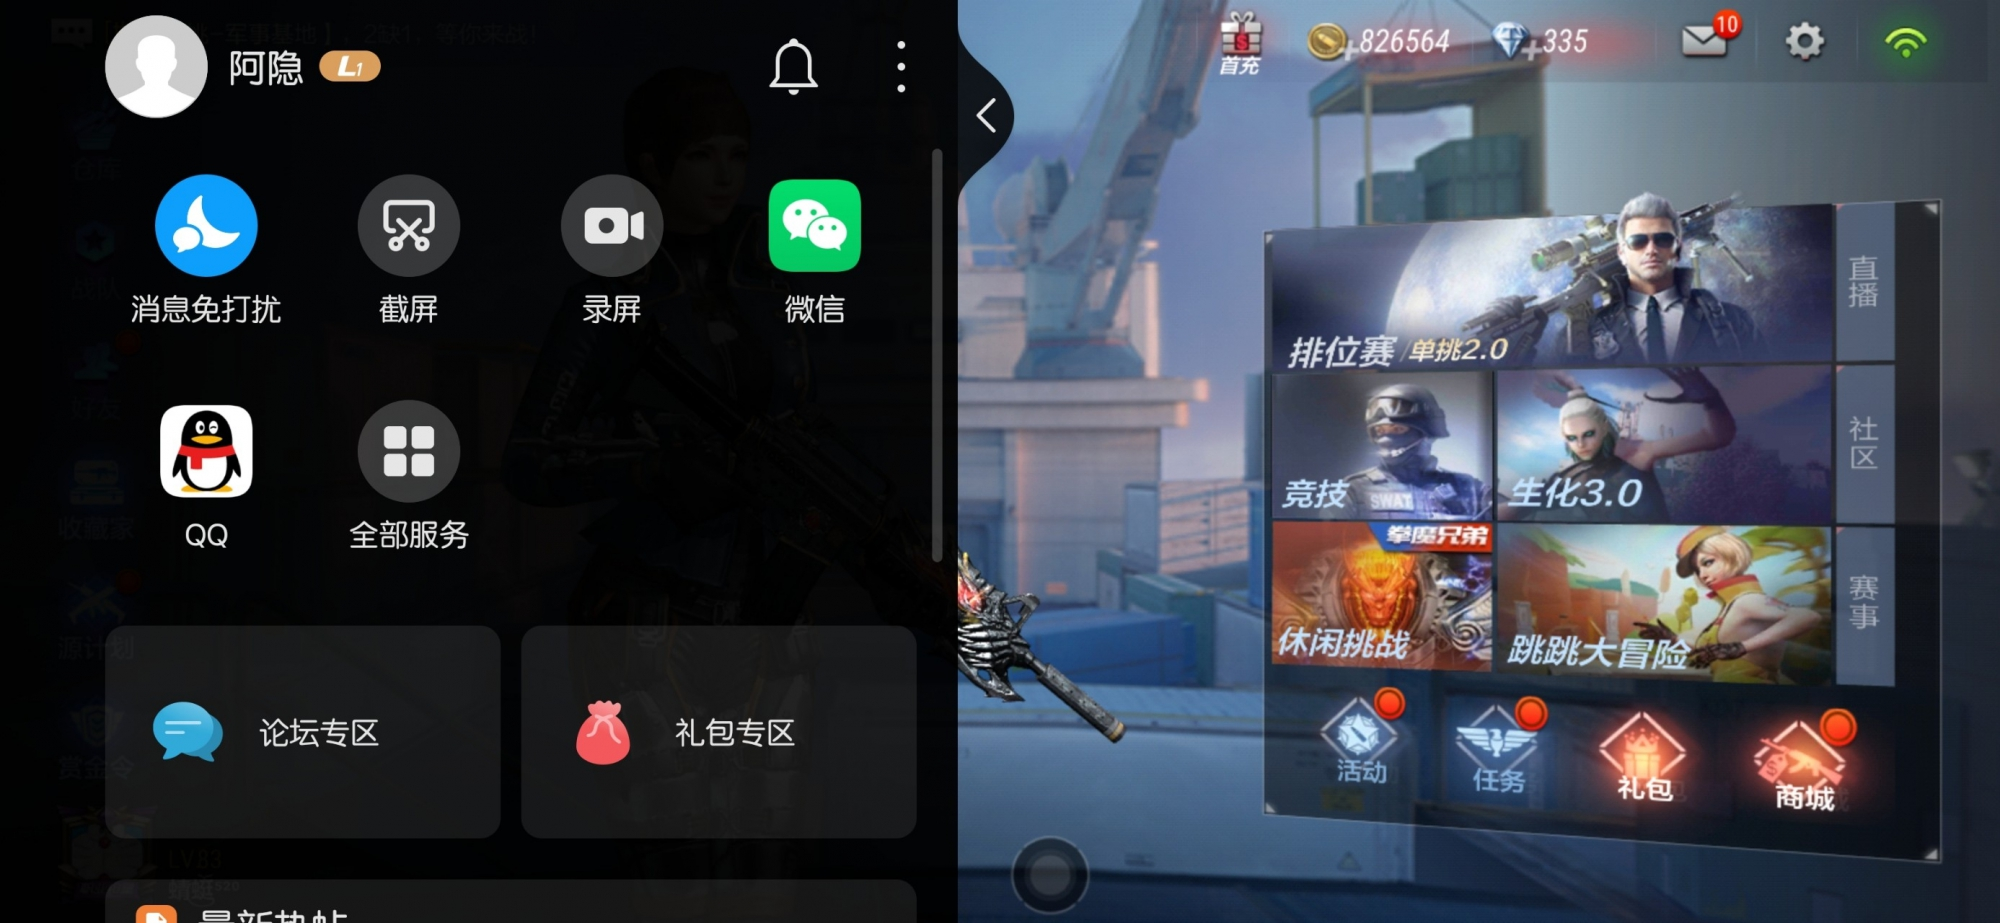 Screenshot_20191108_185958_com.tencent.tmgp.cf.jpg